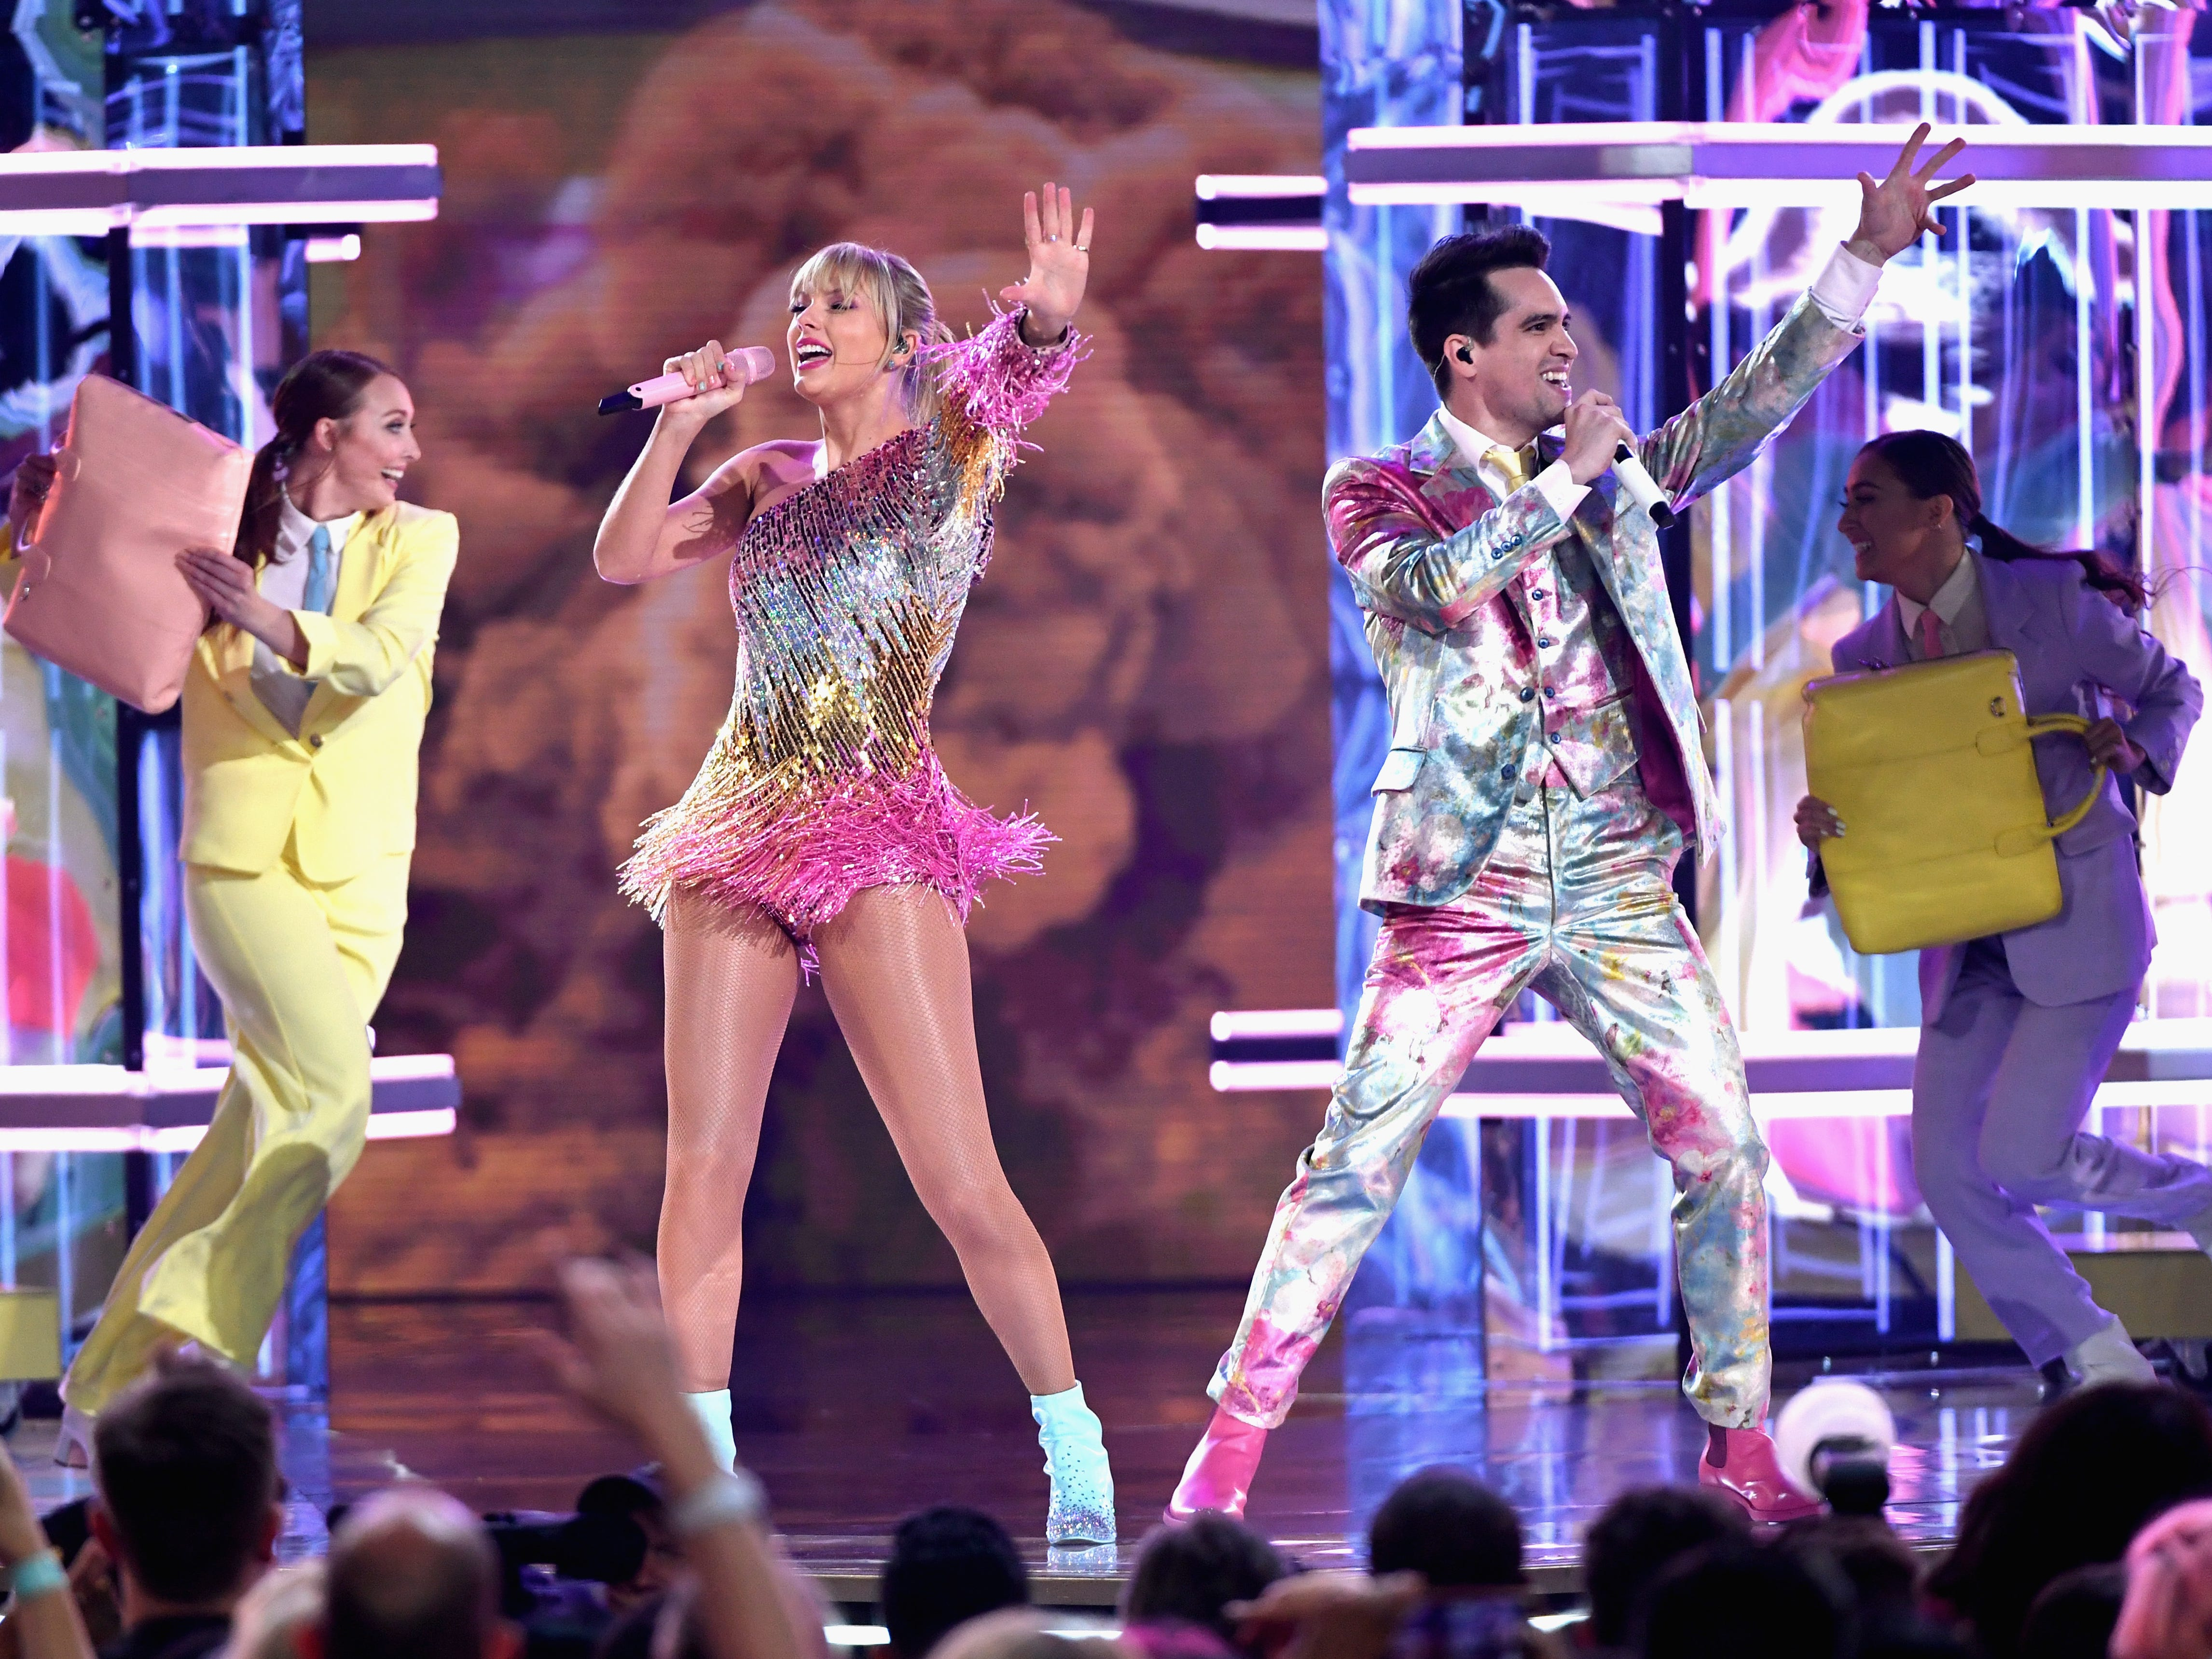 Taylor Swift performs with Brendon Urie of Panic! at the Disco onstage during the 2019 Billboard Music Awards at MGM Grand Garden Arena on May 1, 2019 in Las Vegas, Nevada.